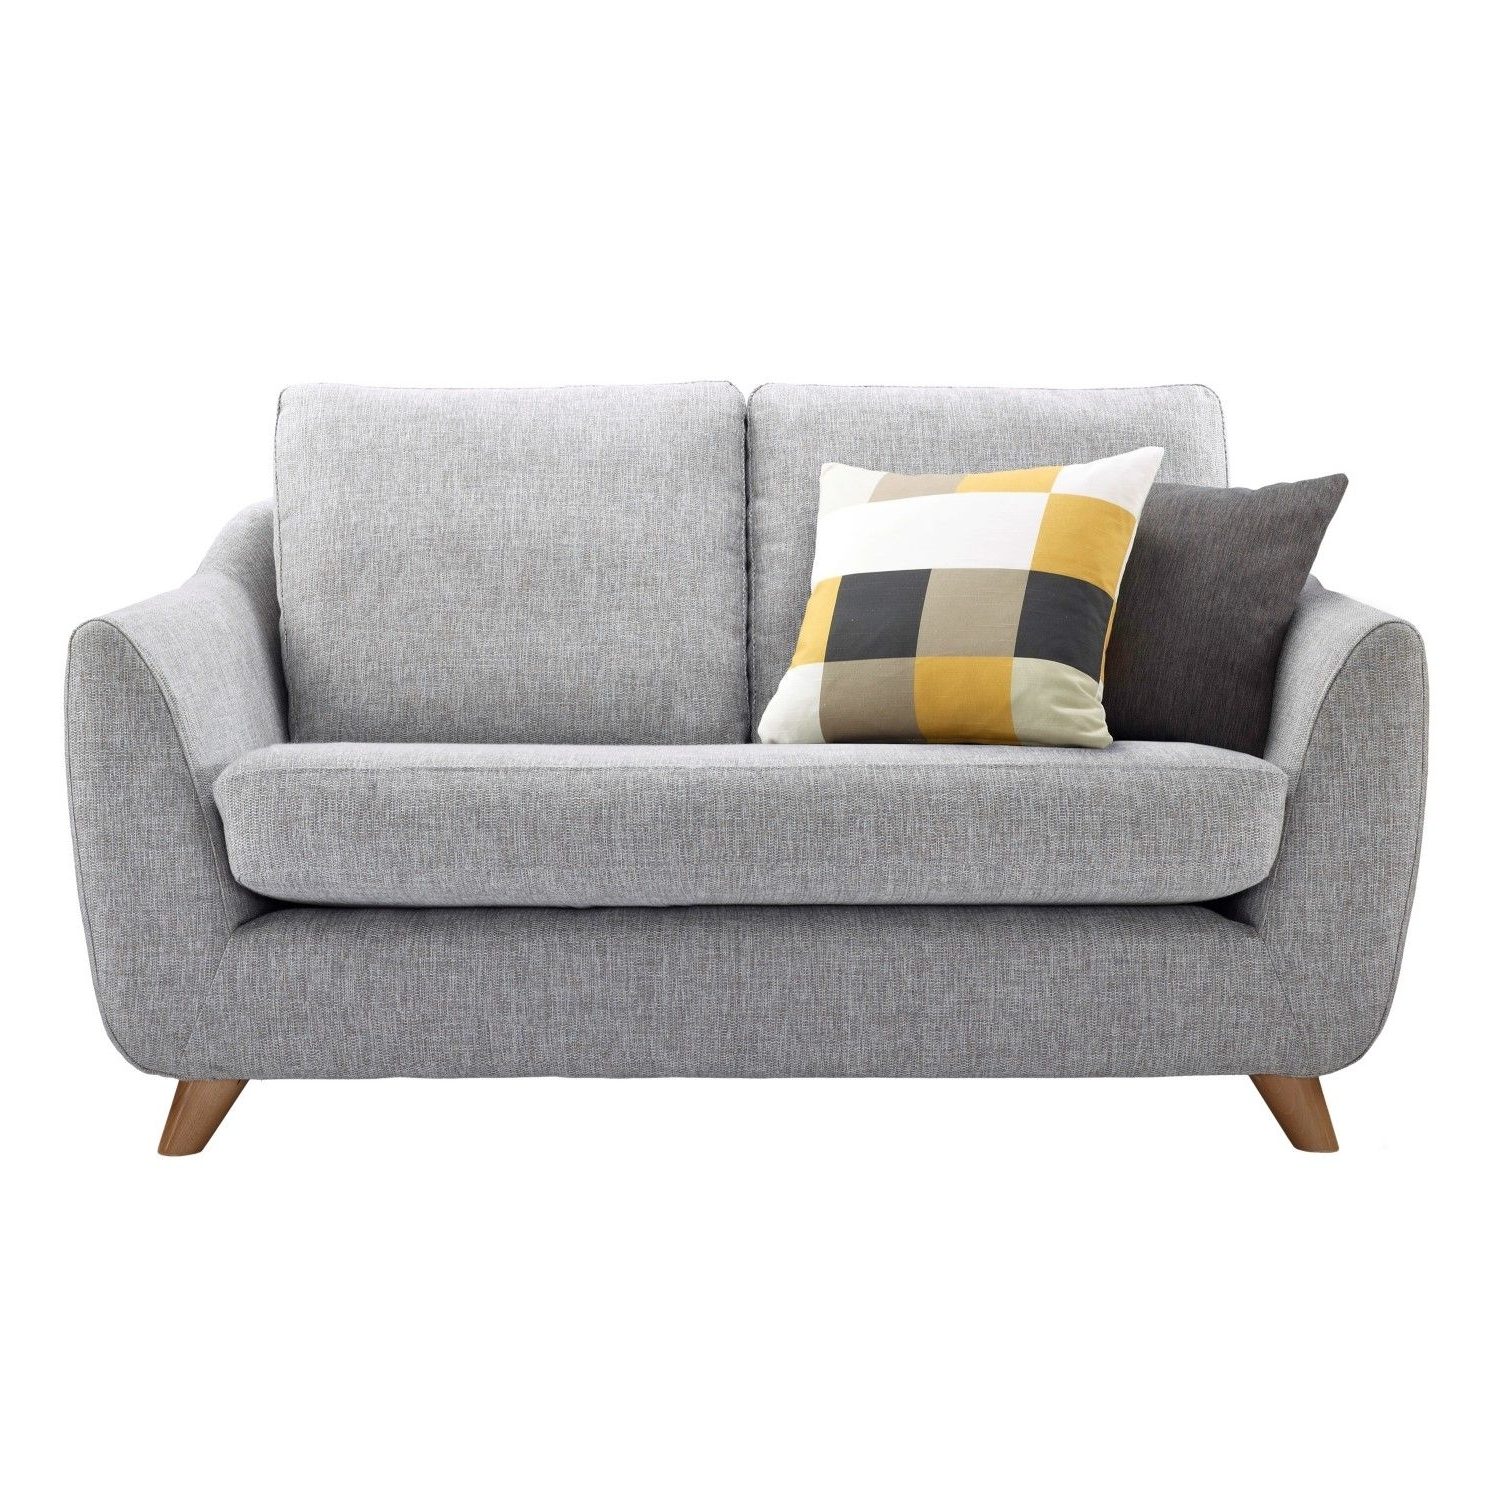 Cheap Small Sofa Decoration Intended For Sofas And Loveseats (View 4 of 15)